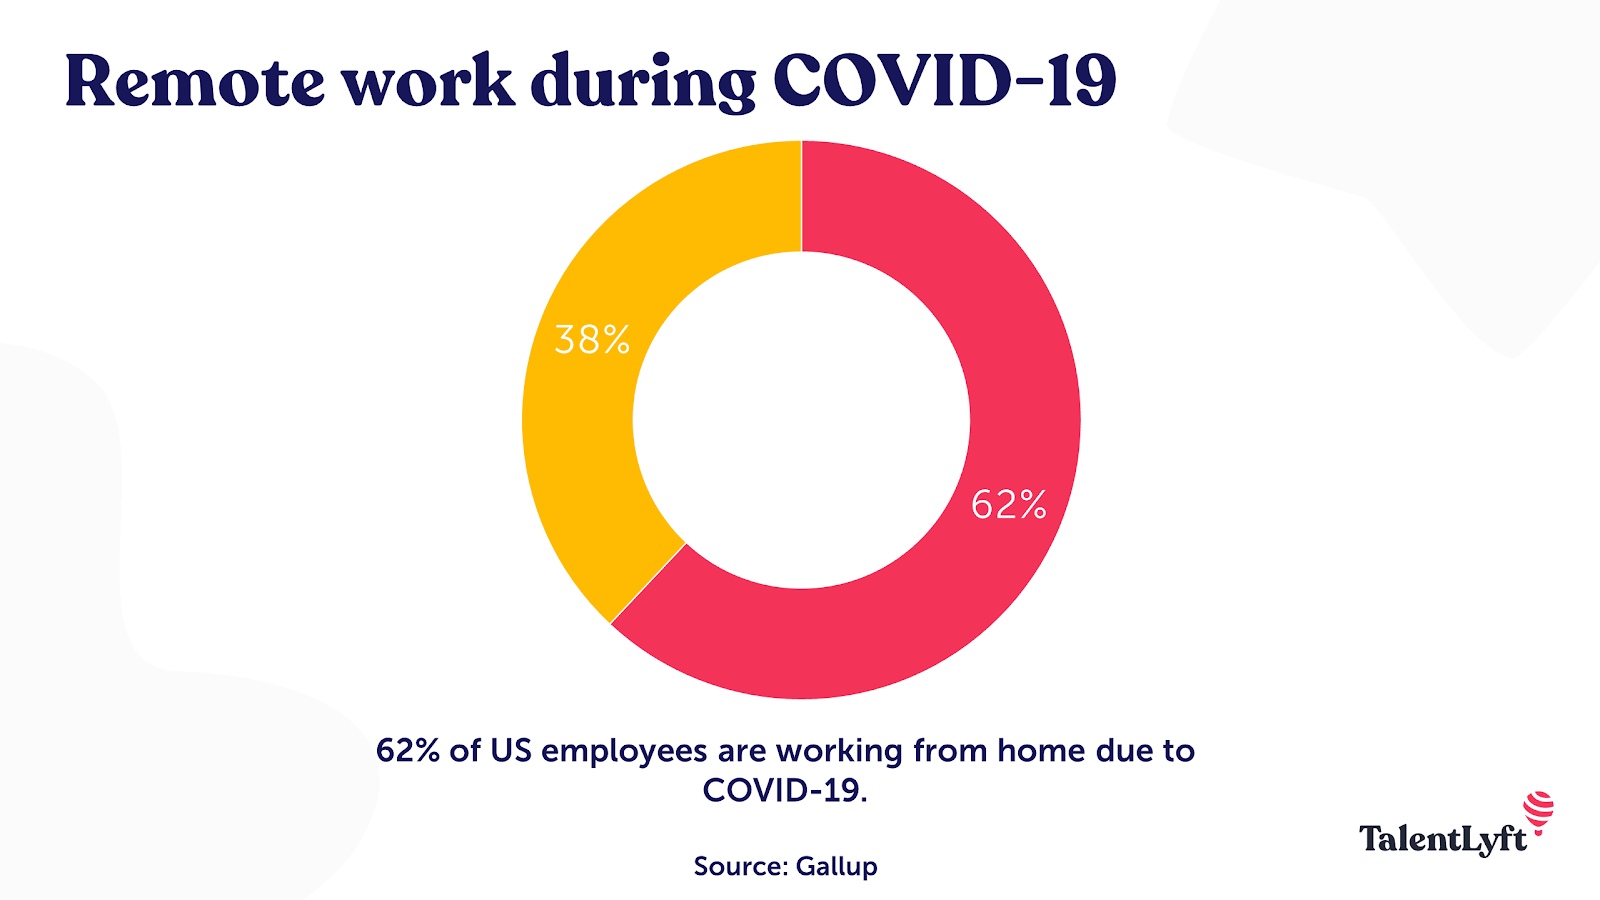 Remote work during COVID-19: How many people work remotely now?